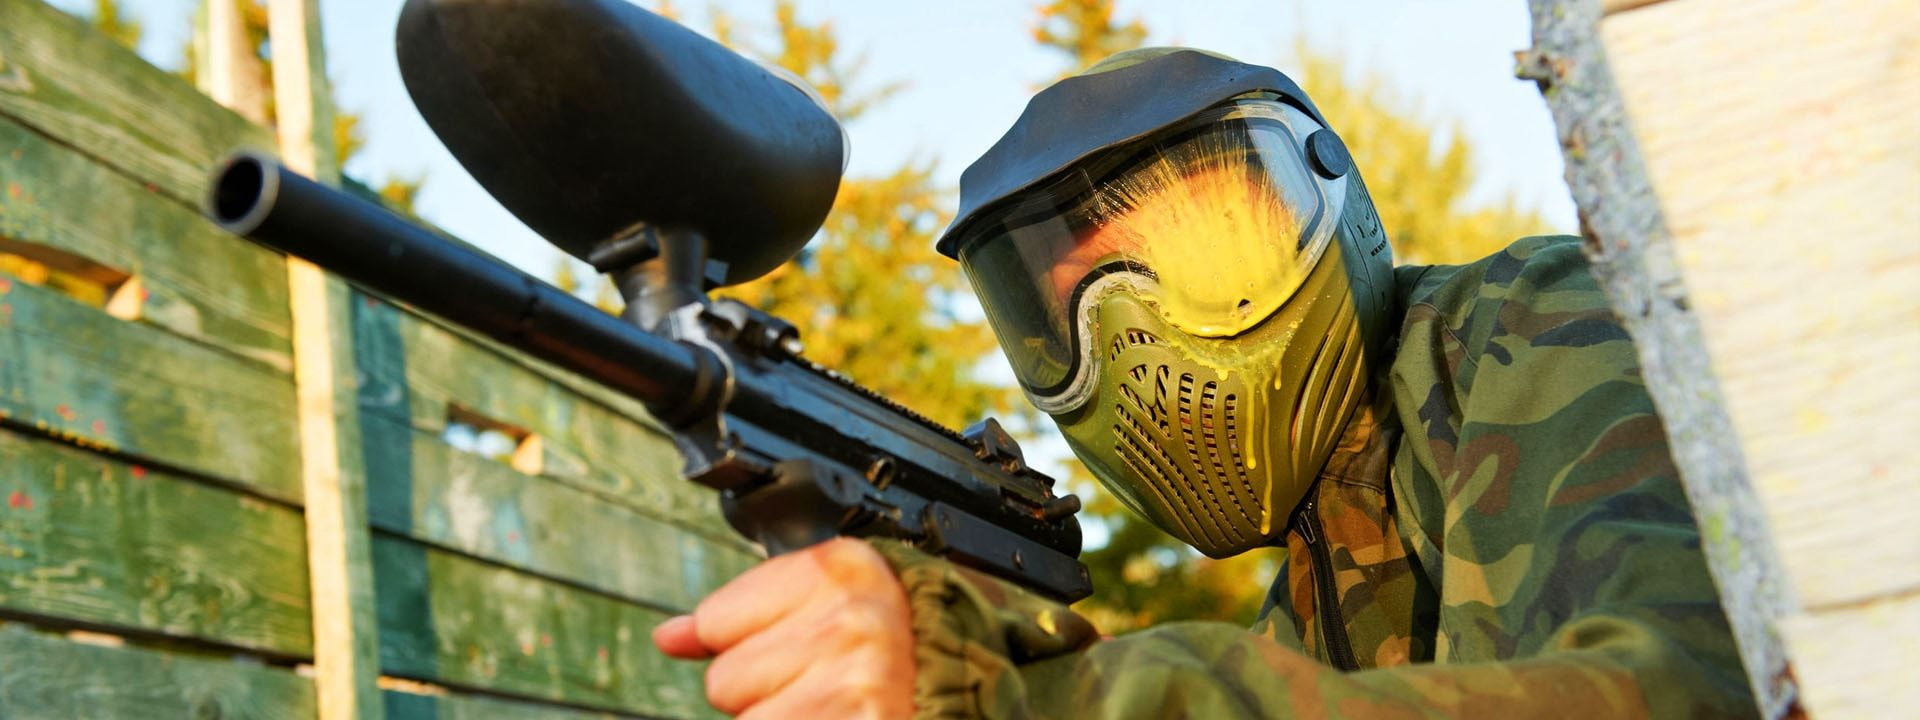 paintball in twente bij outdoors holten